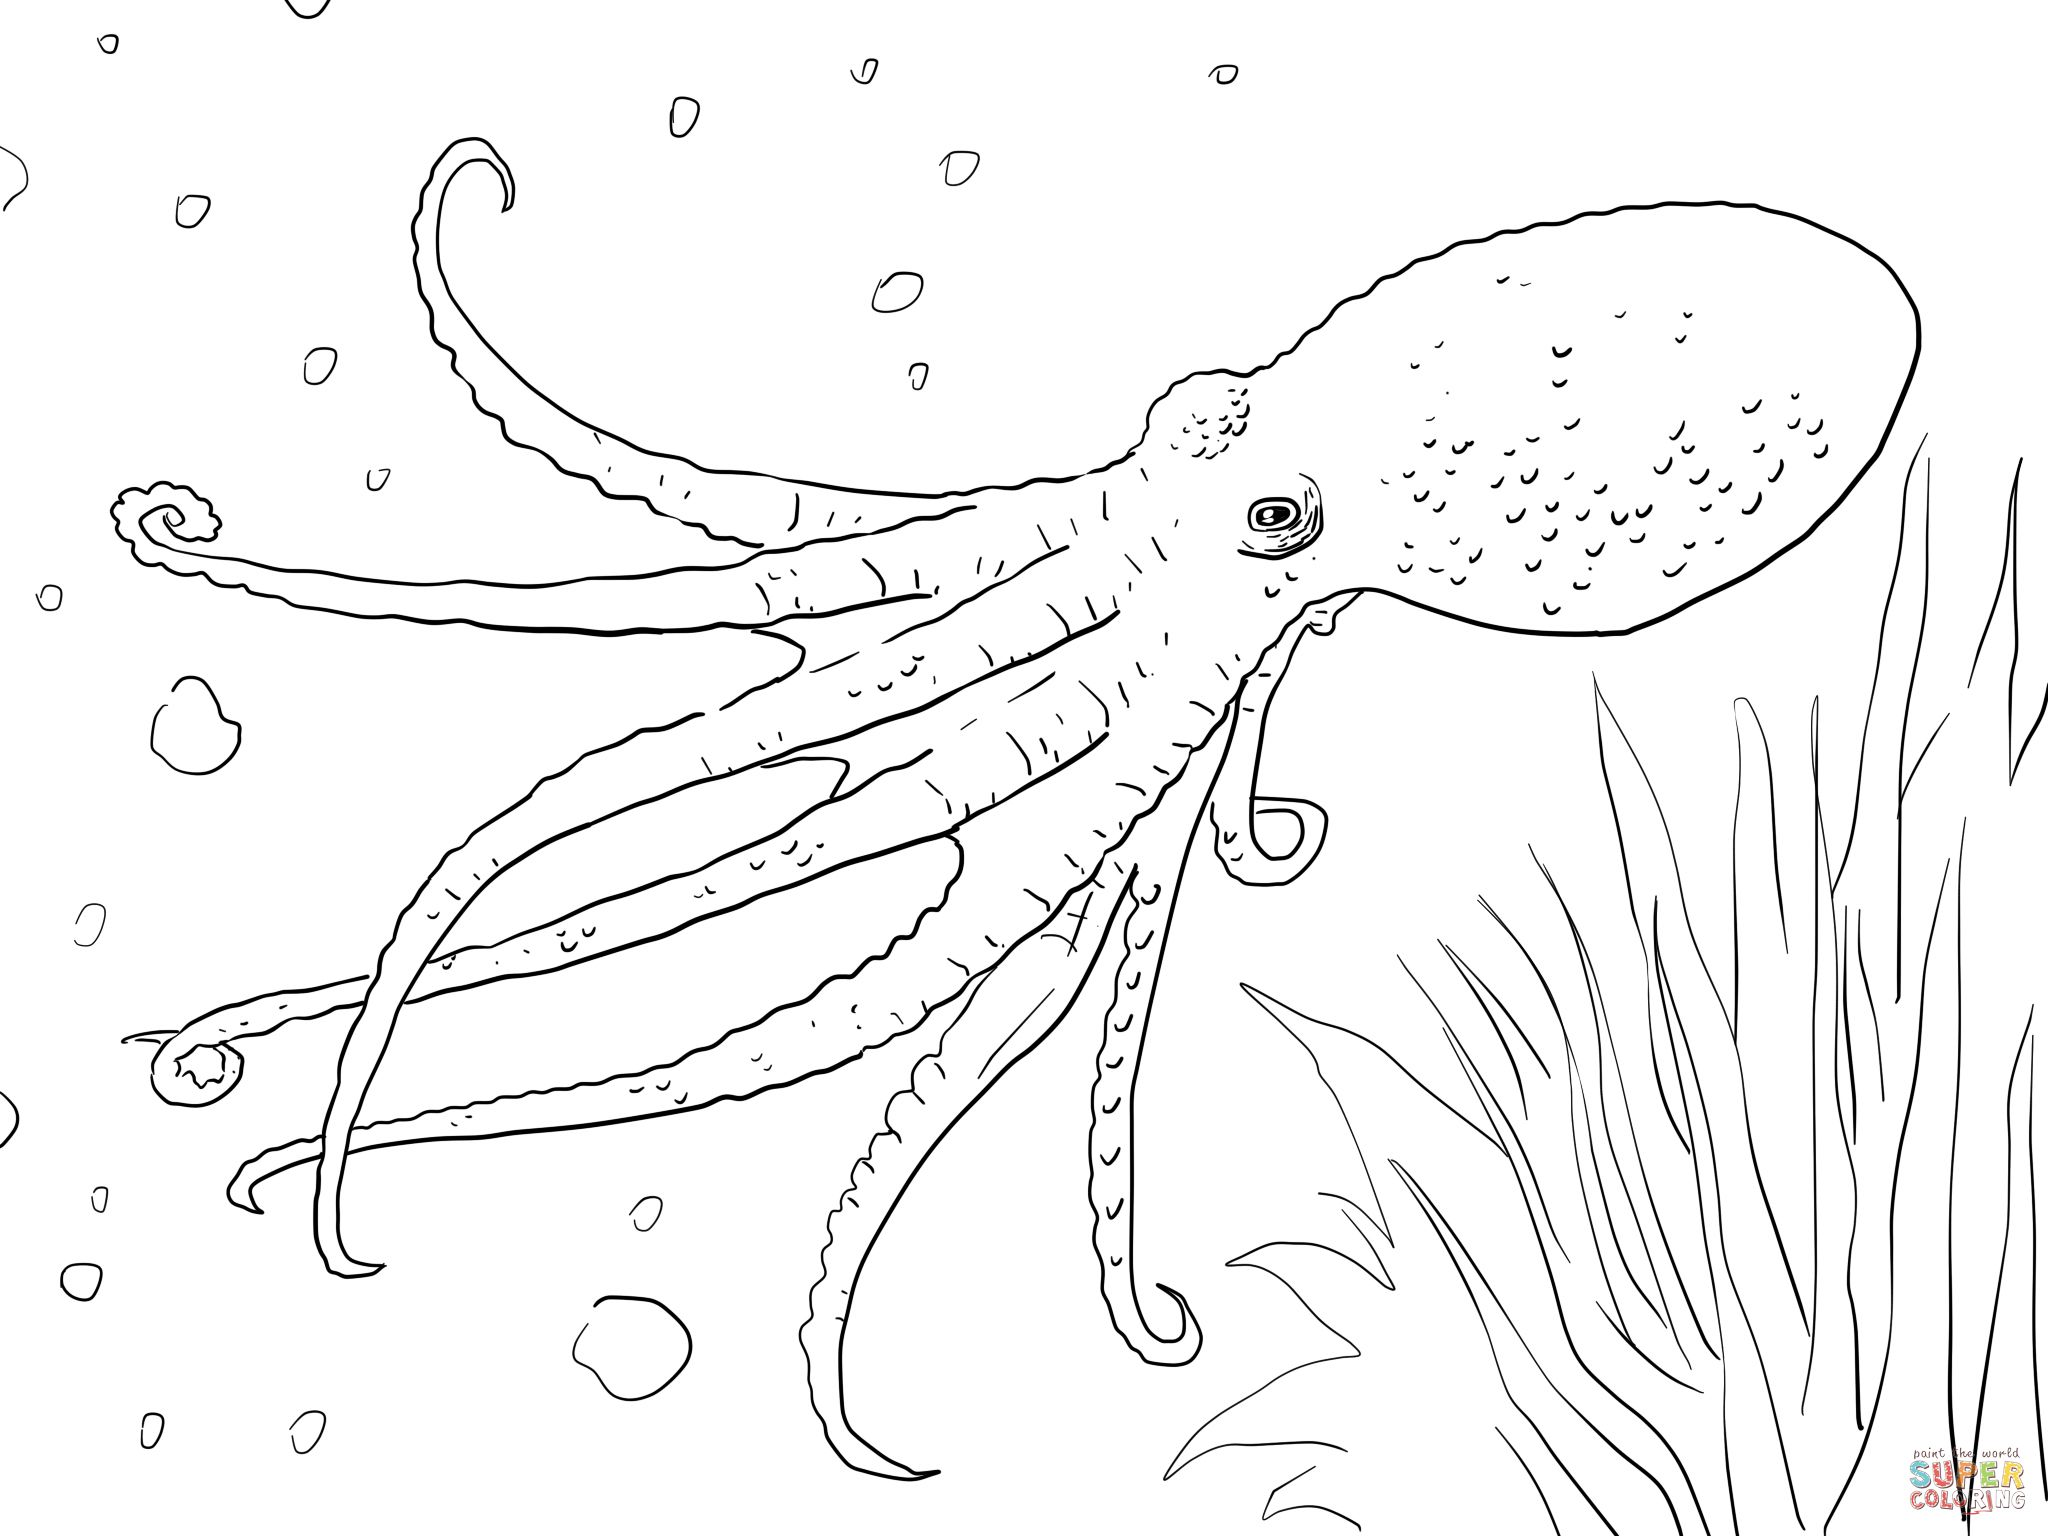 Adult Cute Octopus Color Page Images beauty 1000 images about octopus on pinterest drawing illustration and tattoo design images